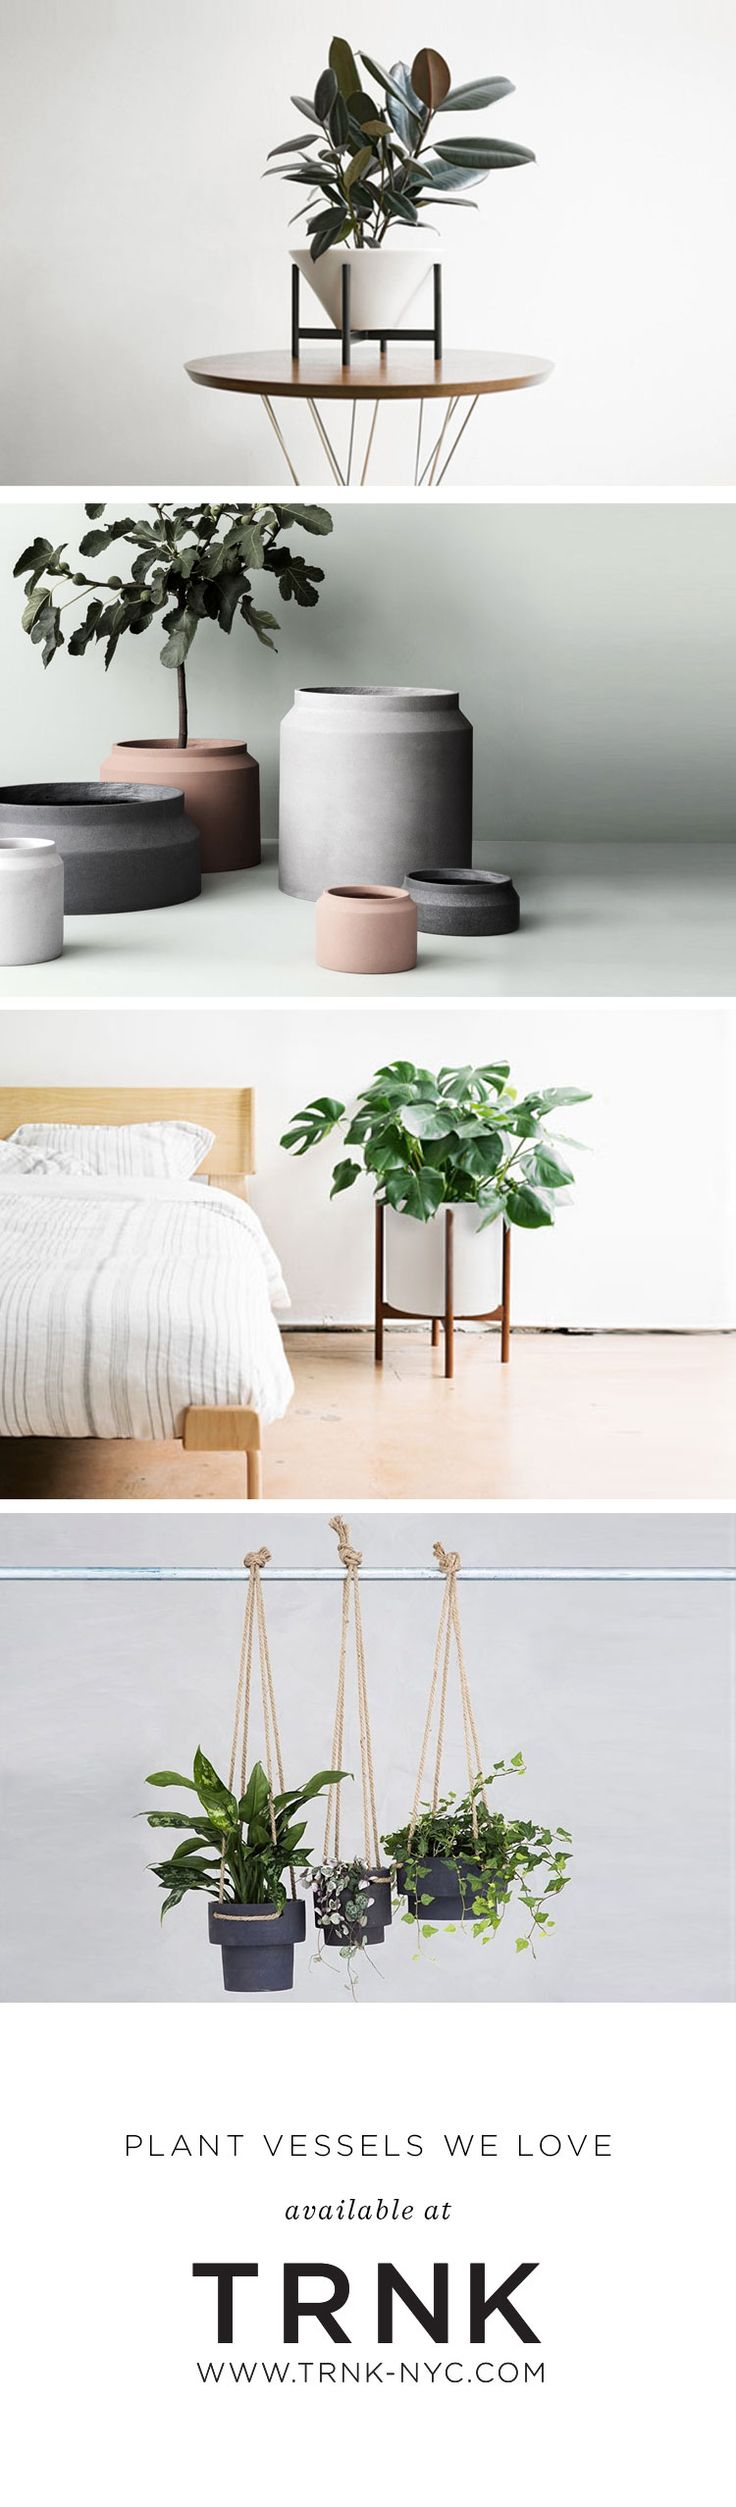 Read and shop 5 of our favorite plant vessels on #TRNK